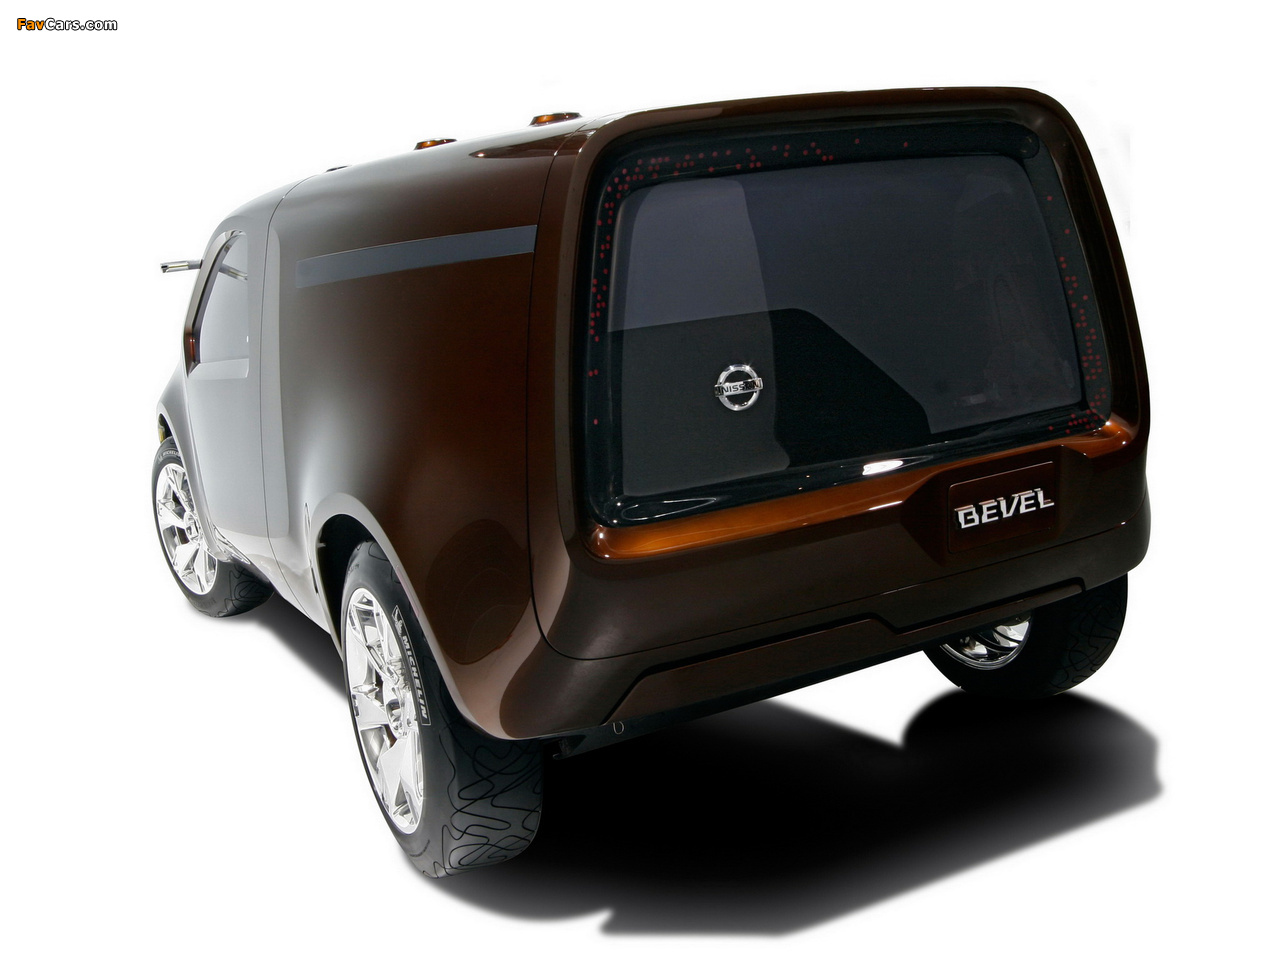 Nissan Bevel Concept 2007 wallpapers (1280 x 960)